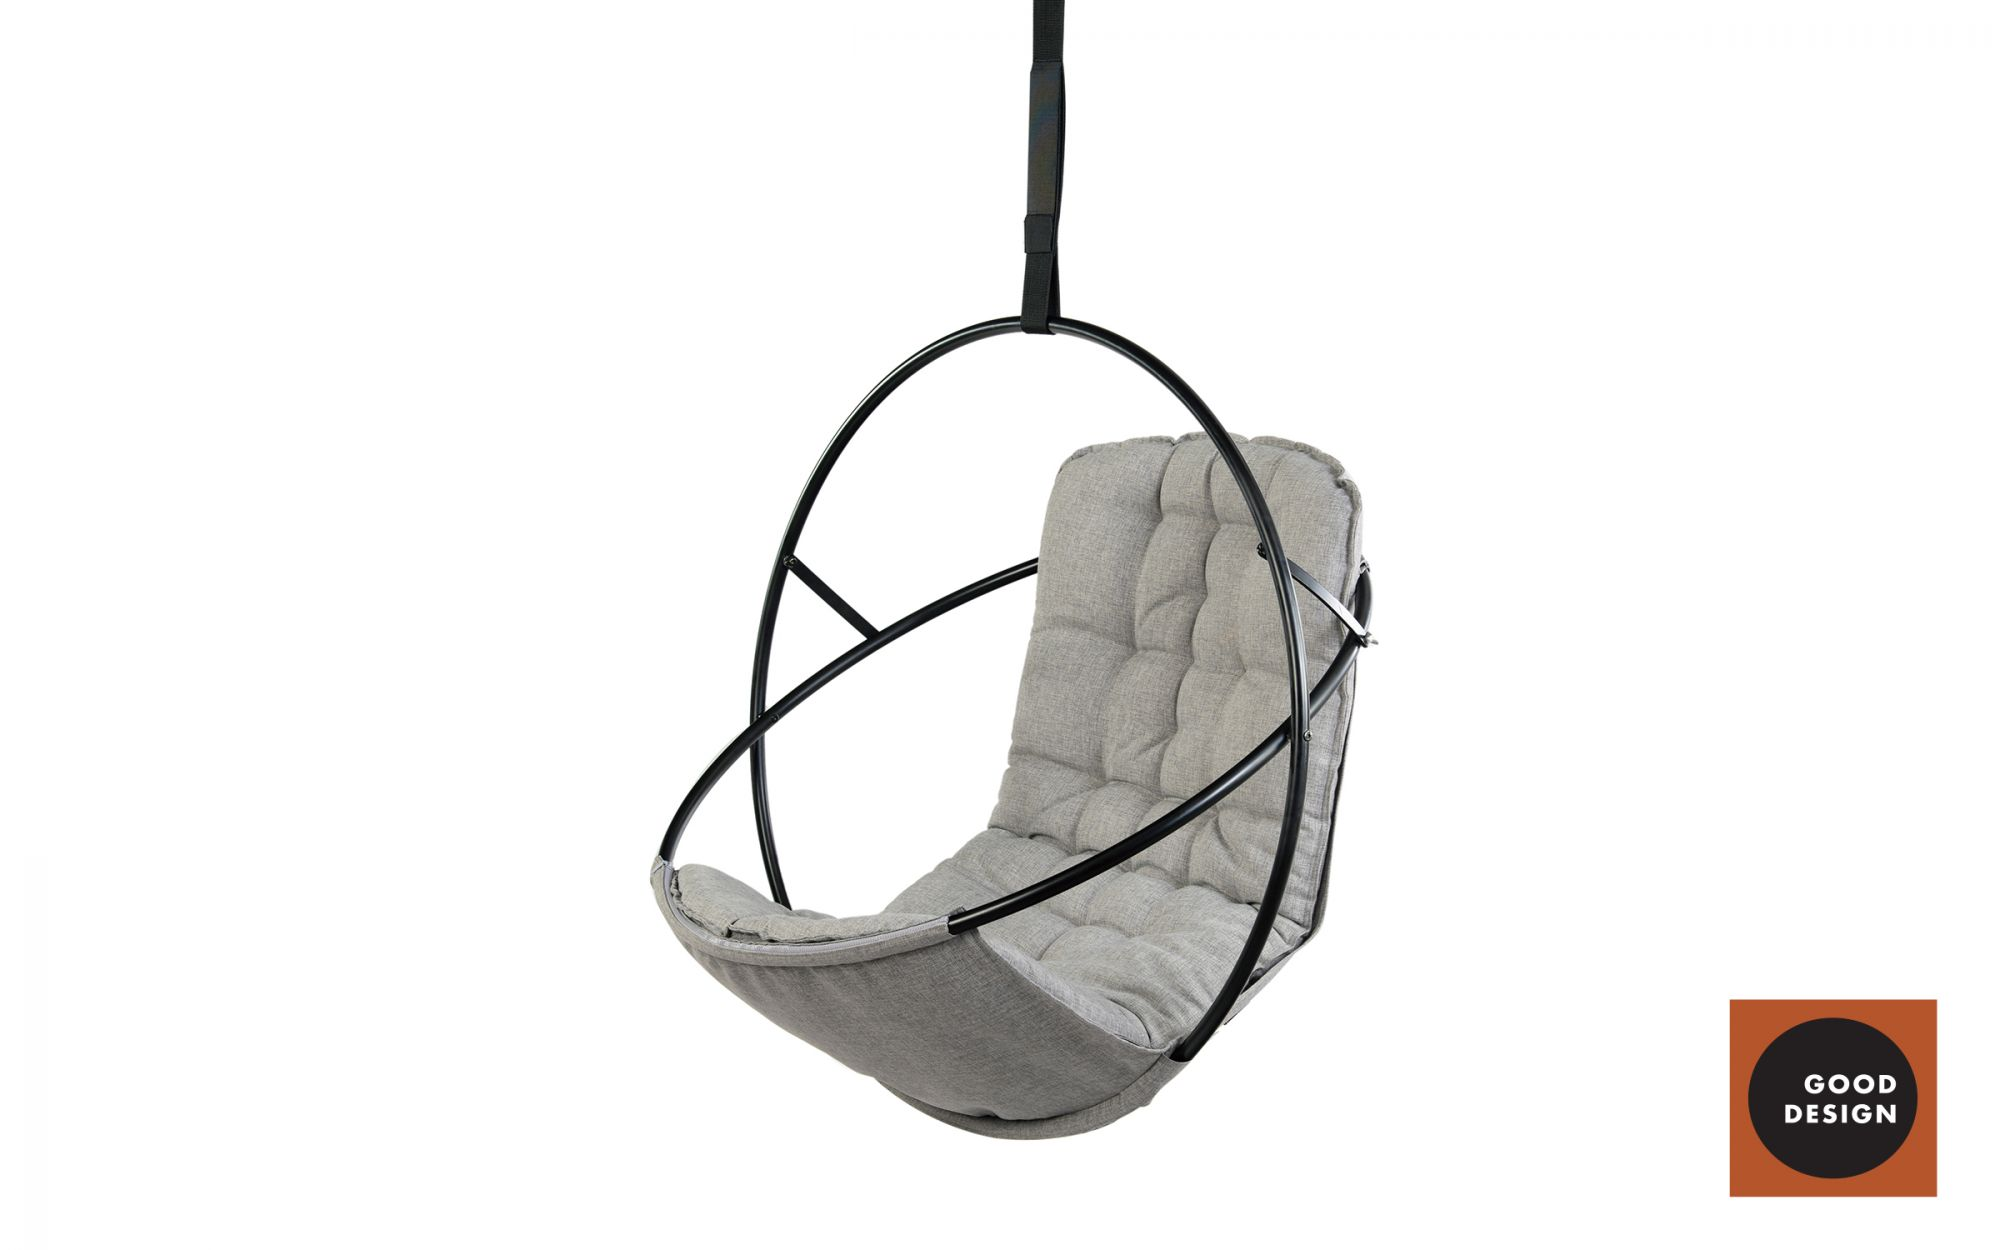 SwingChair-Round-GoodDesignAward